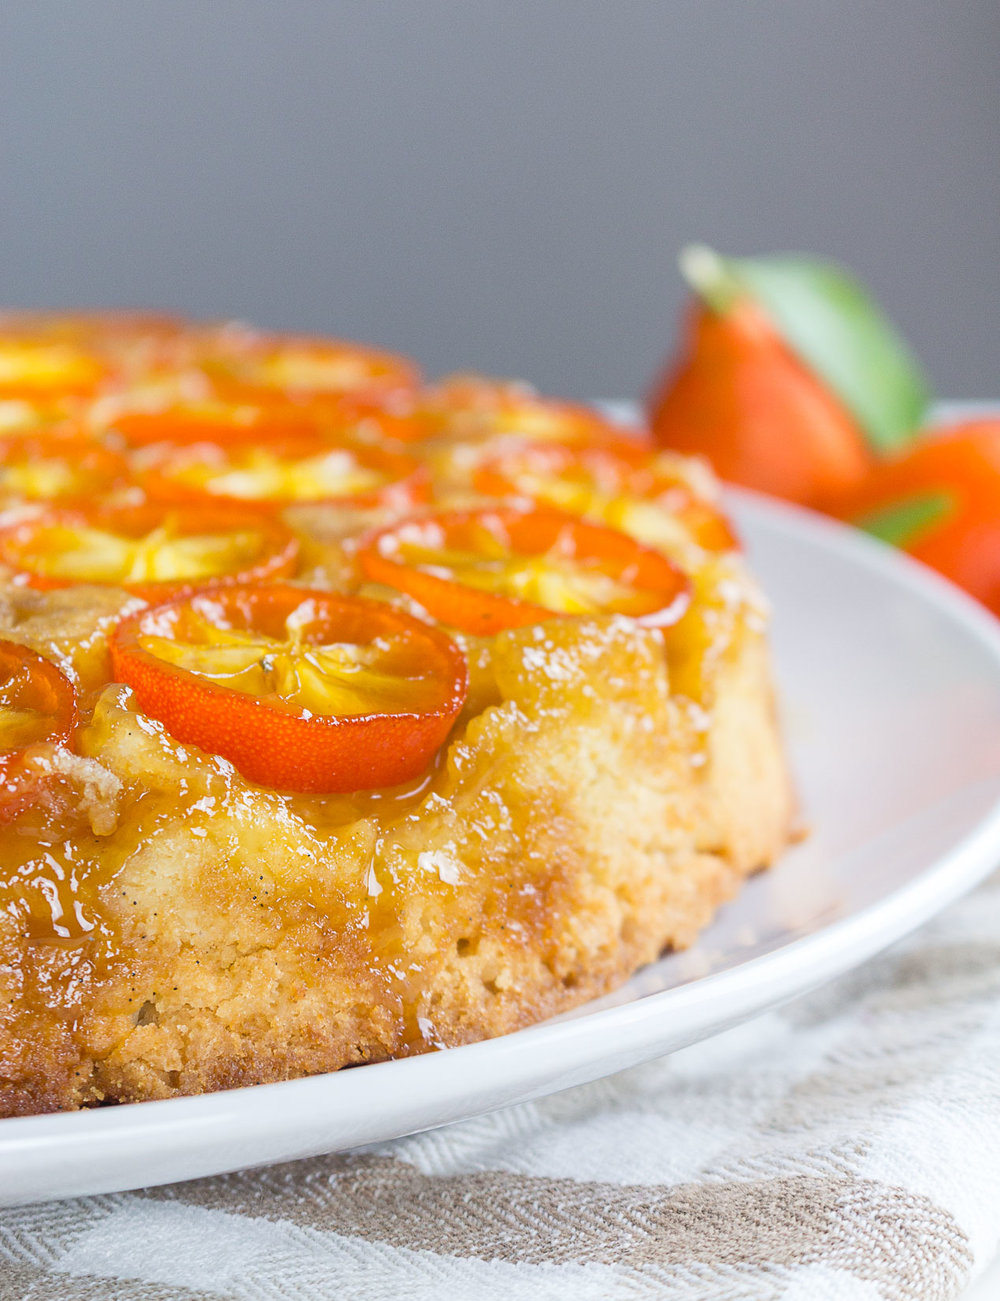 mandarinquat-upside-down-cake-17.jpg